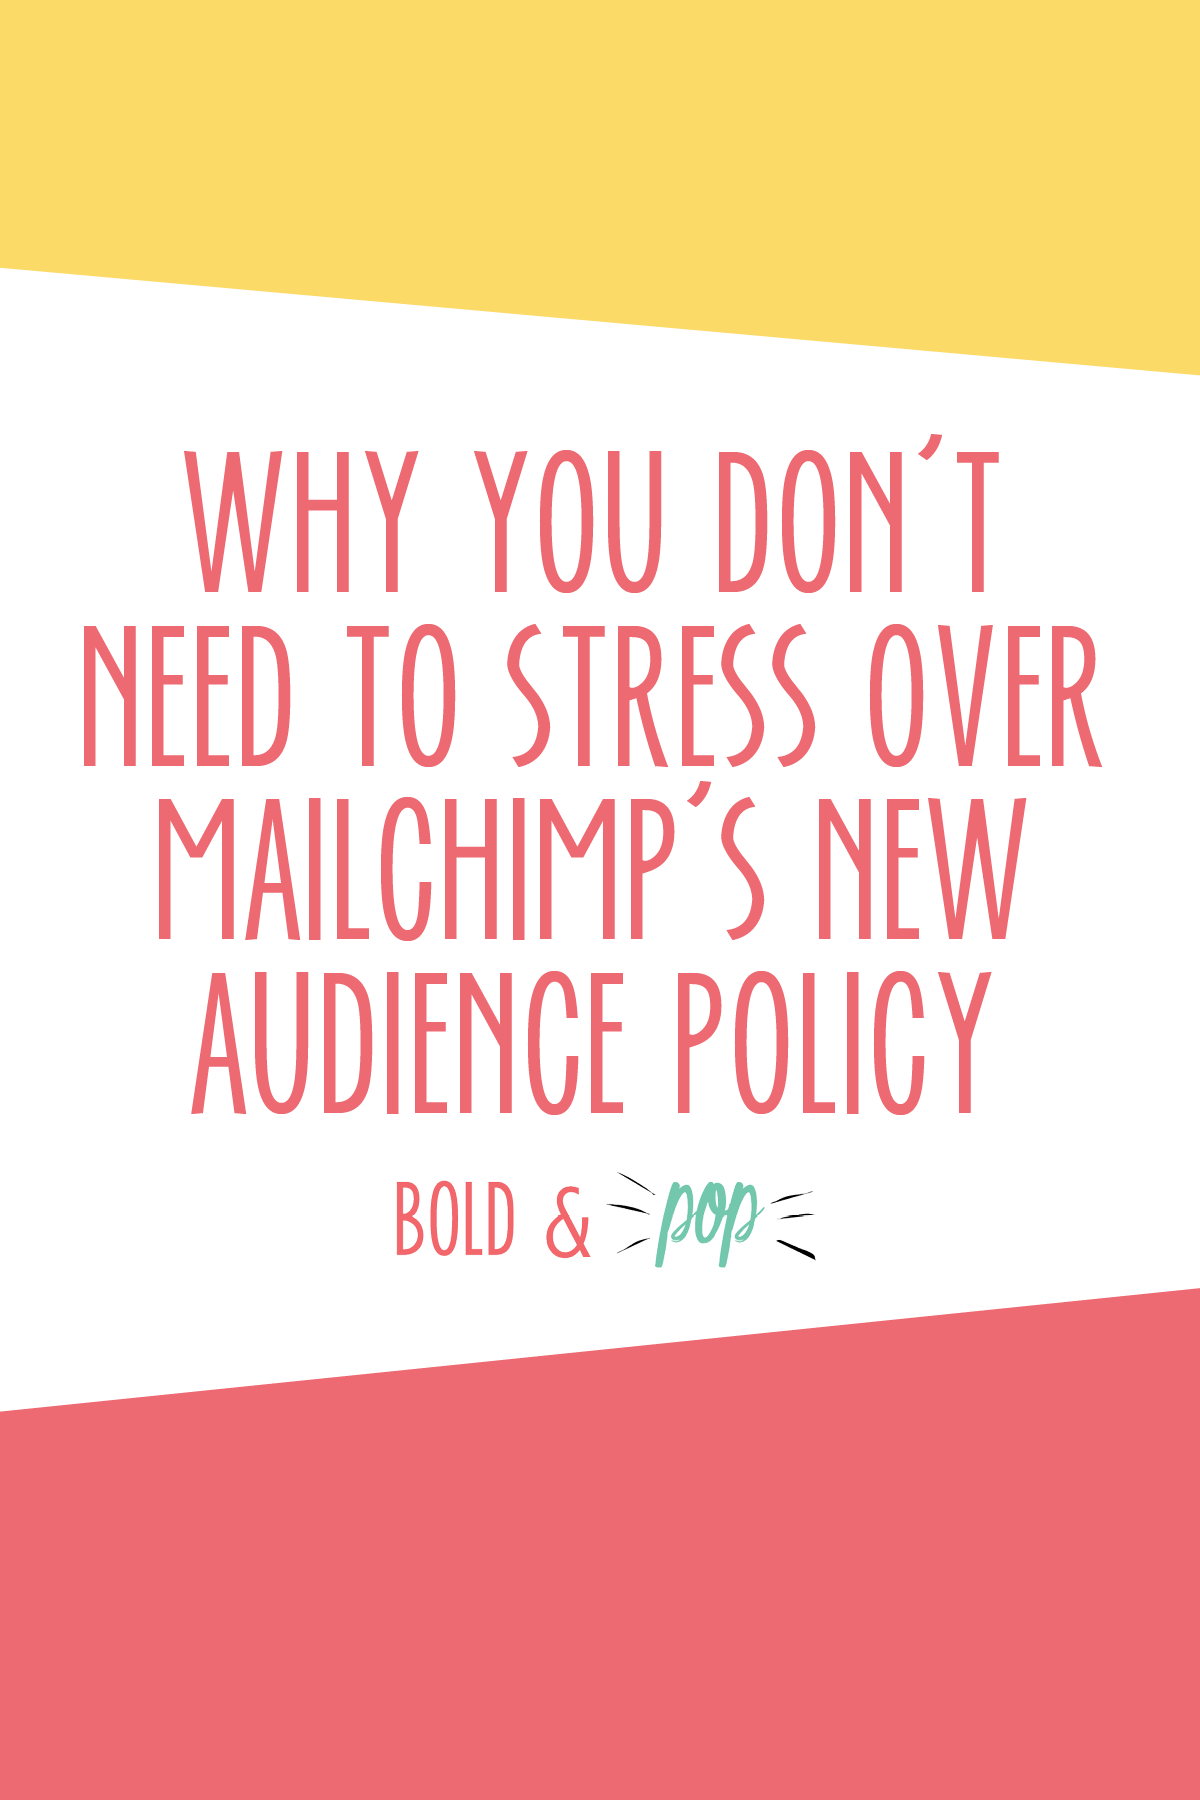 Bold & Pop : Why You Don't Need to Stress Over Mailchimp's New Audience Policy